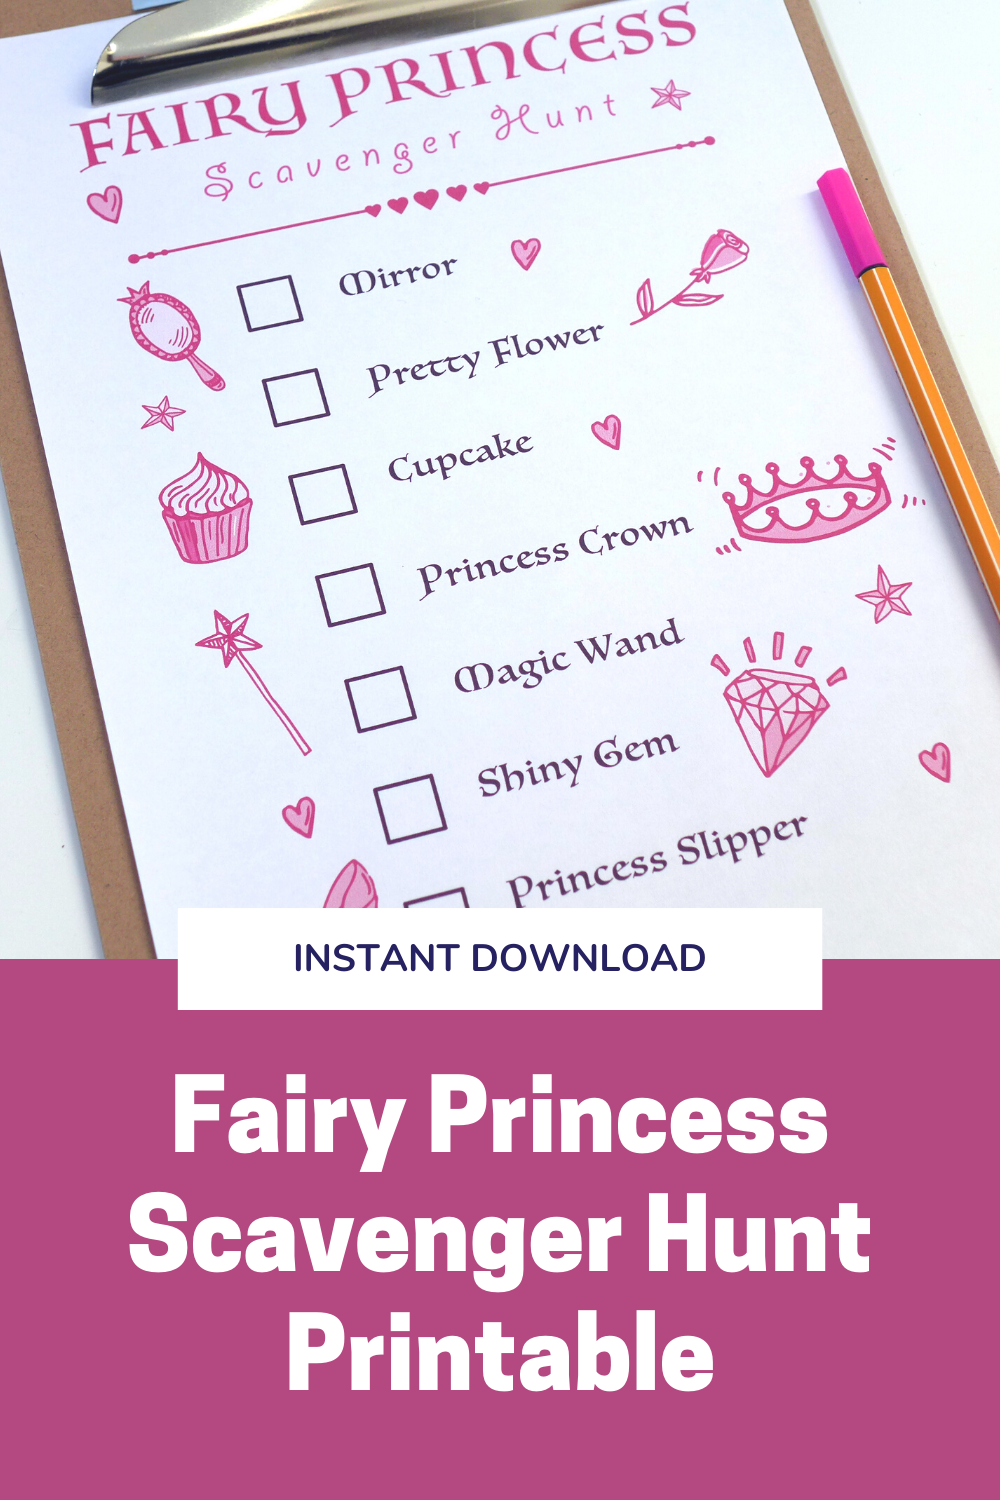 Fairy Princess Scavenger Hunt Printable For Kids Fairy Princess Party Game Girly Pink Party Activity In 2020 Princess Party Games Fairy Princess Party Princess Birthday Party Invitations